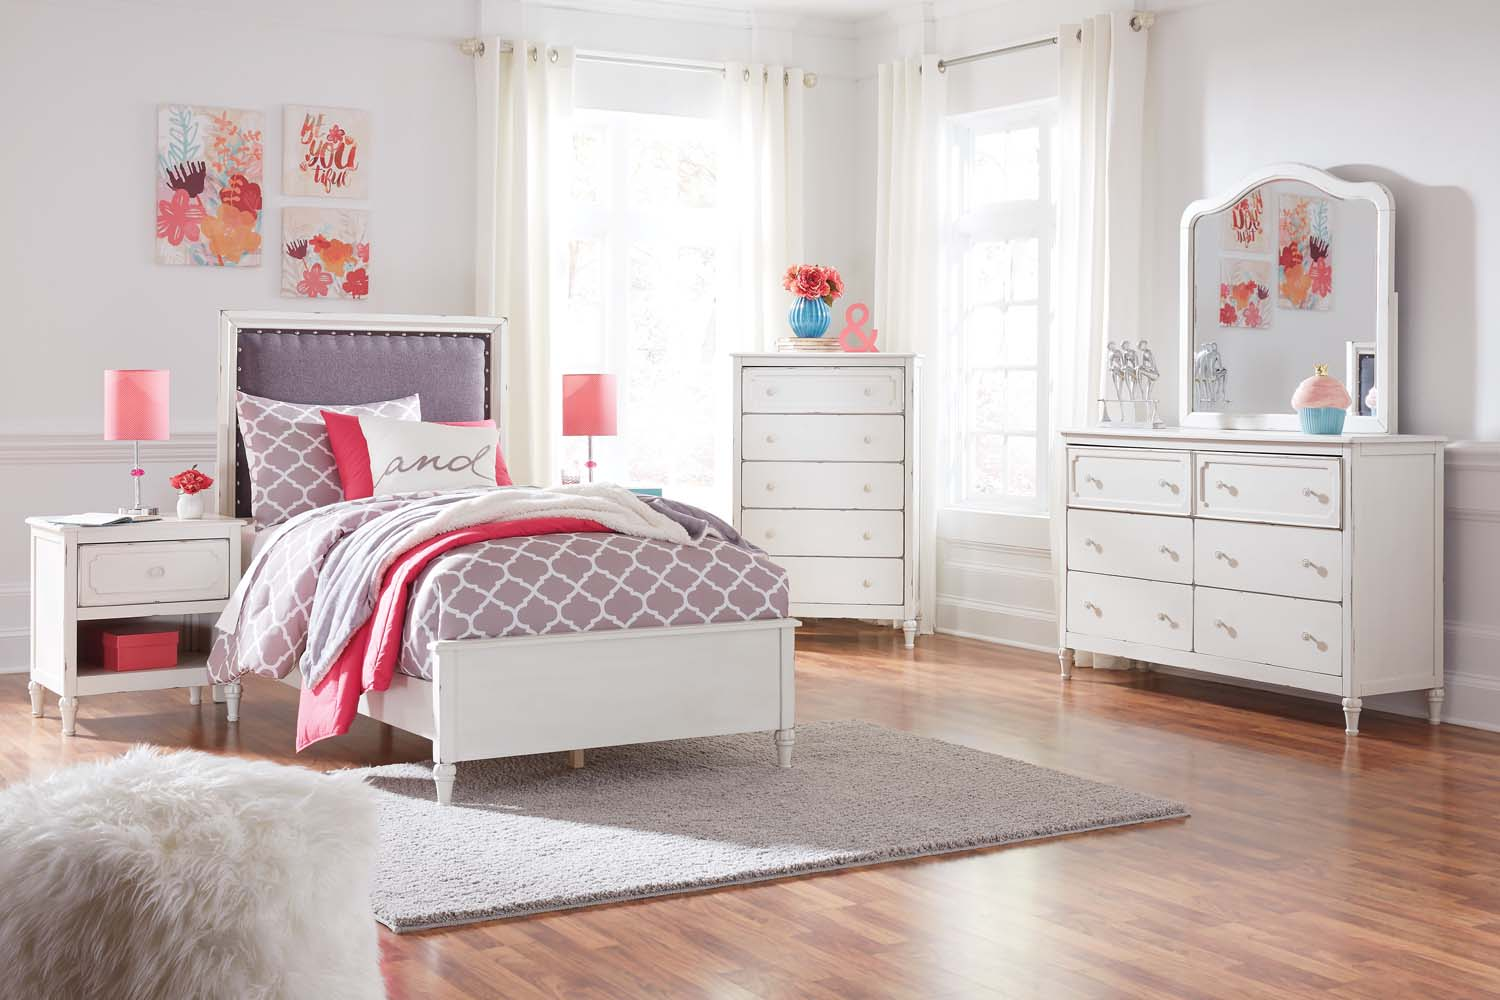 Hidden · Additional Faelene   Chipped White 3 Piece Bed Set (Twin)